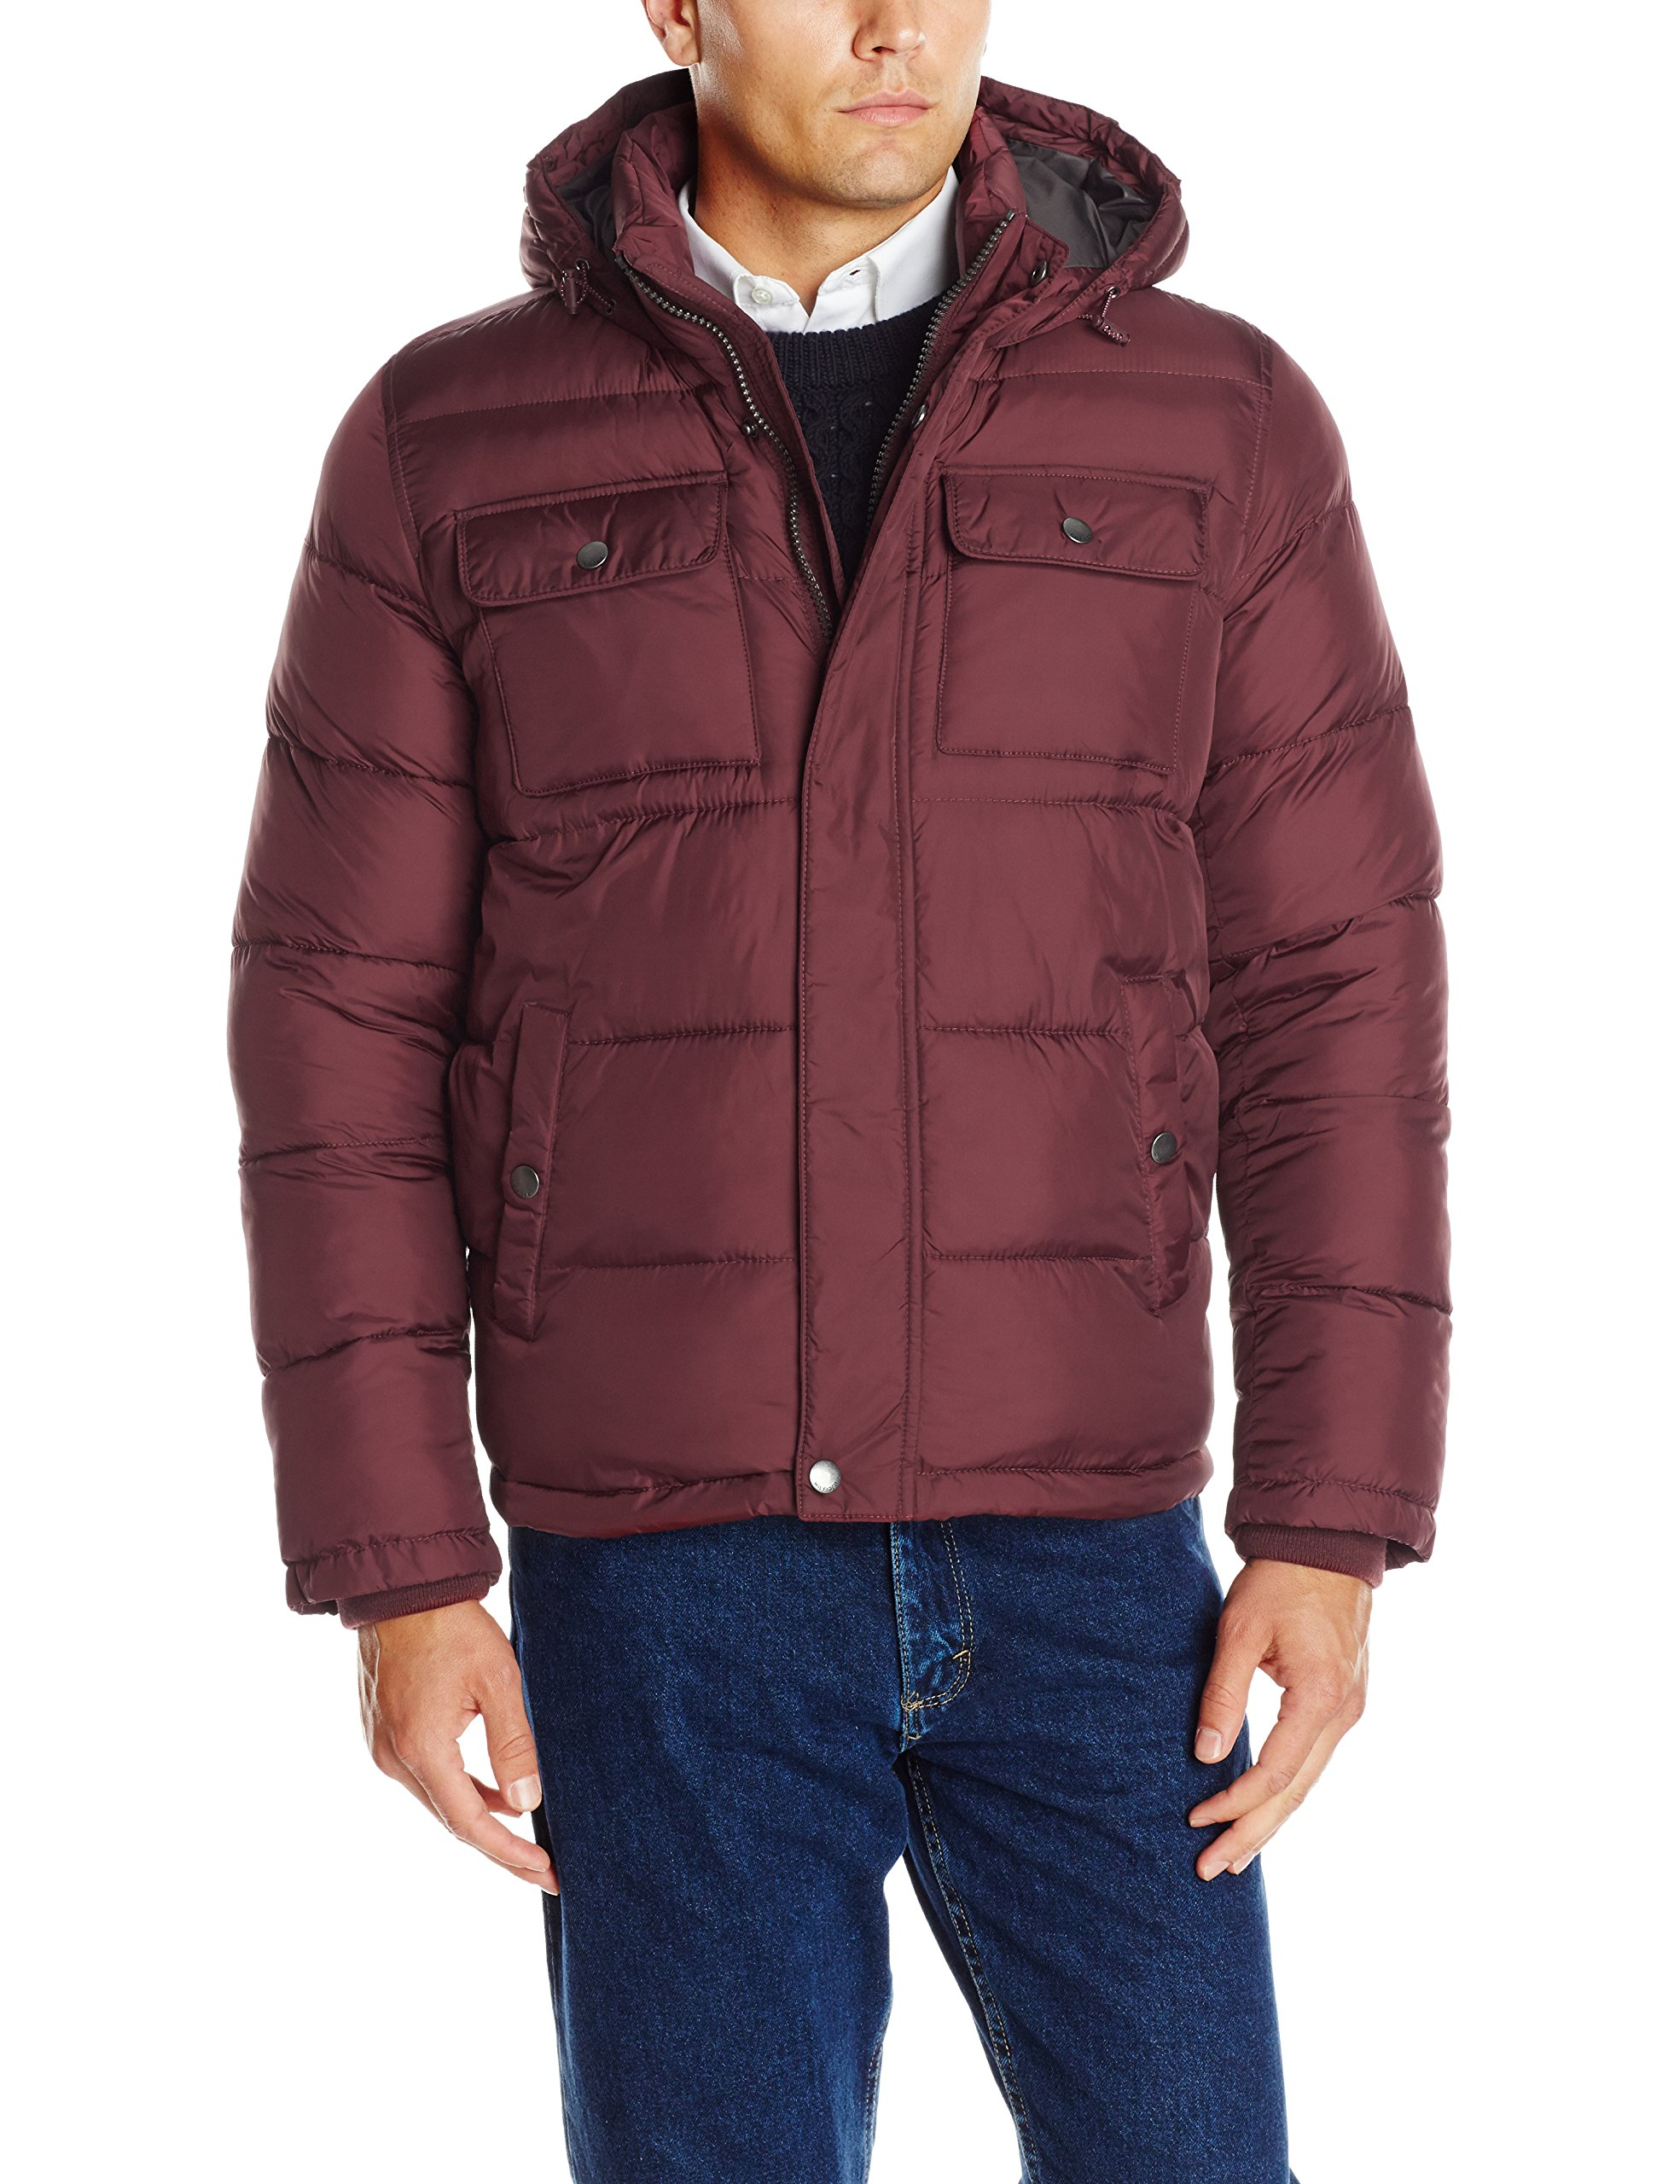 Tommy Hilfiger Men's Nylon Two Pocket Hoody Puffer, Burgundy, Large